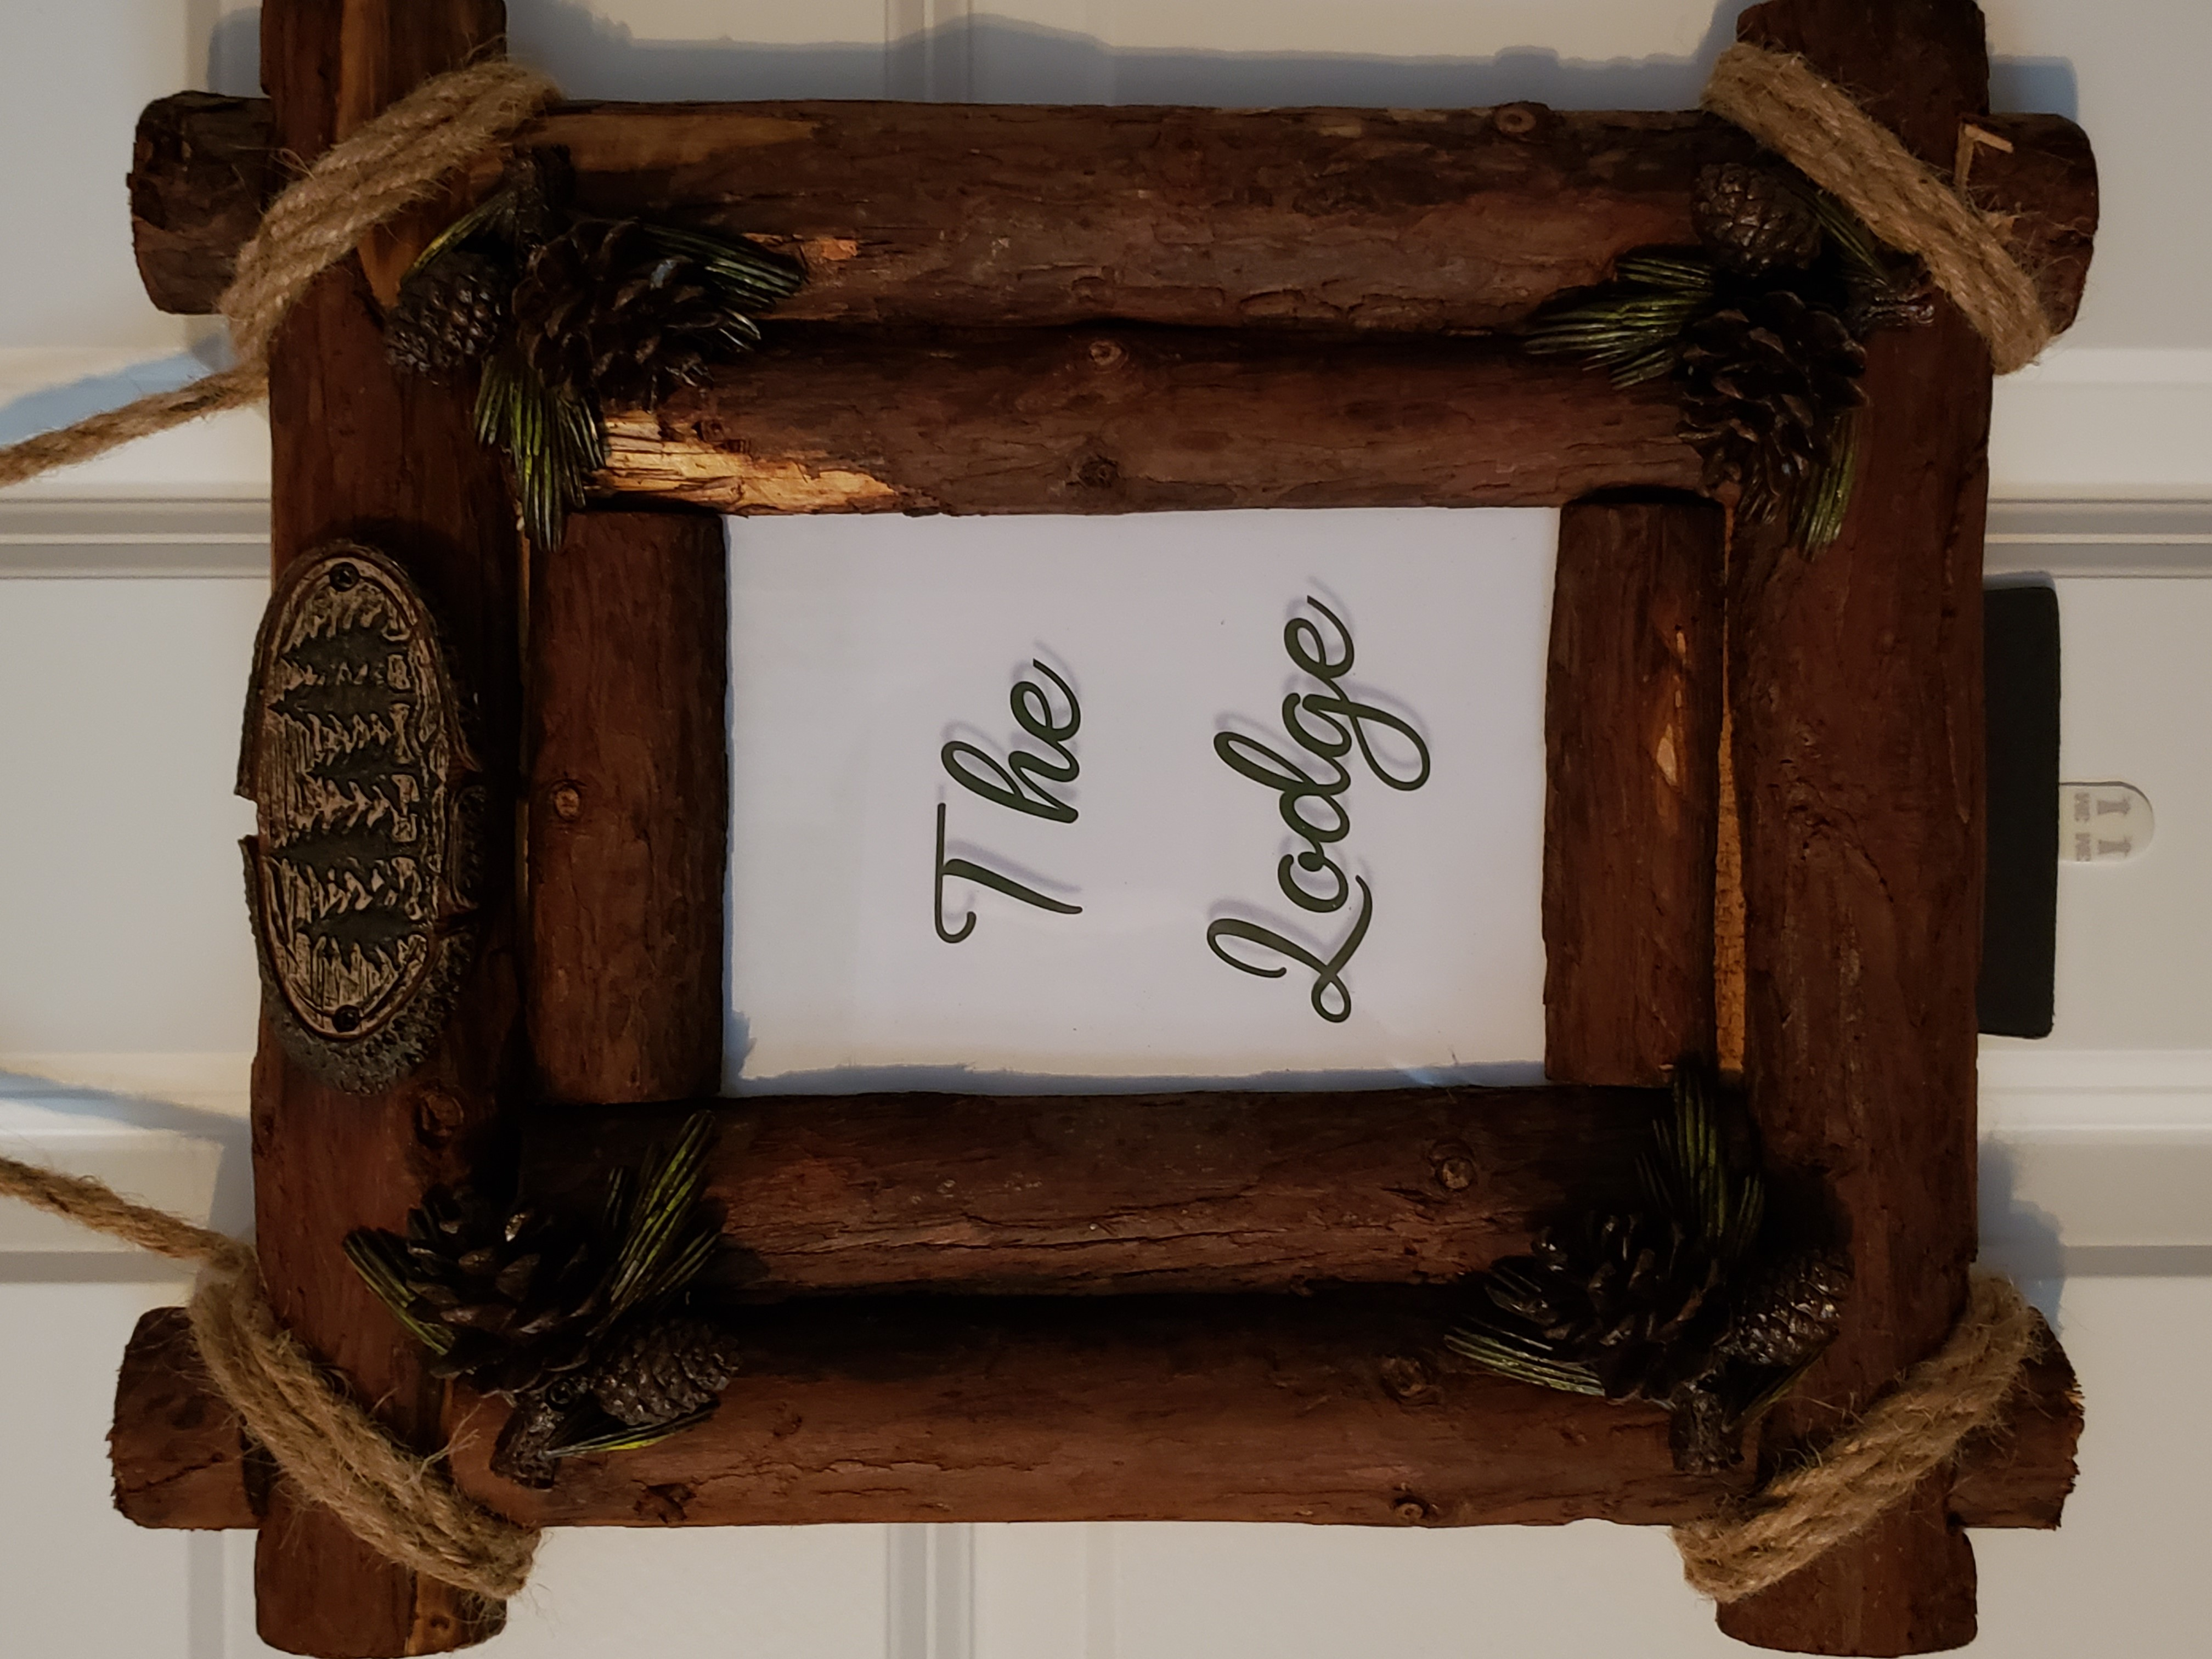 Framed door sign for The Lodge